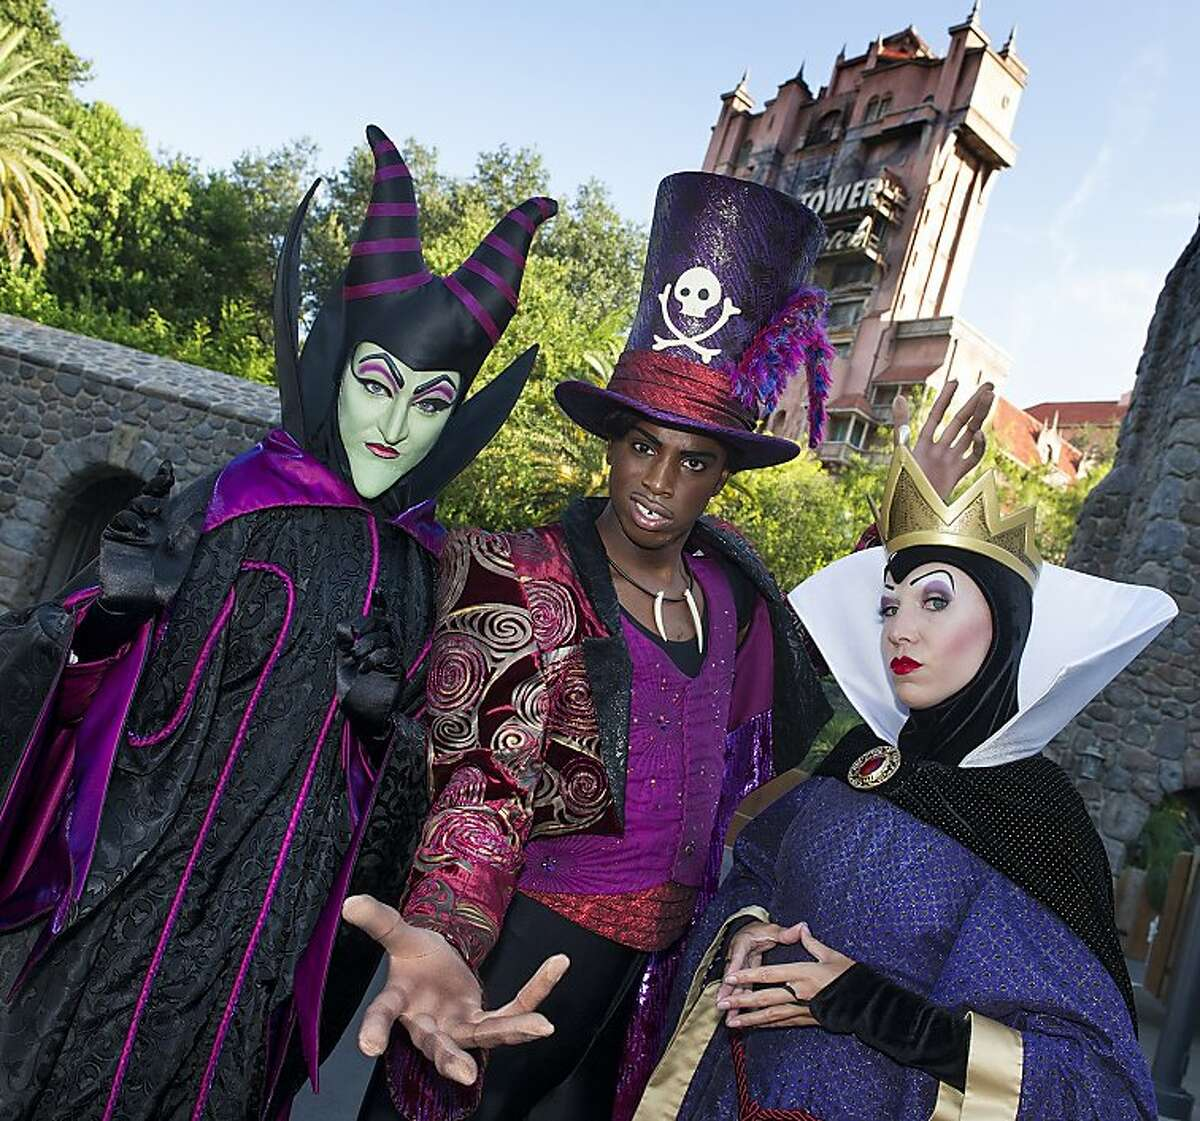 """Disney Villains such as Maleficent, Dr. Facilier and the Evil Queen wait with eerie anticipation as a night of mischief approaches. On Friday Sept. 13, 2013 Disneyland and Disney's Hollywood Studios at Walt Disney World Resort will remain open until the 13th hour (1 a.m.) as the Disney villains are unleashed as part of the Disney Parks Limited Time Magic. The one-night-only event """"Unleash the Villains"""" will include special meet and greets and a dance party hosted by an evil ensemble."""